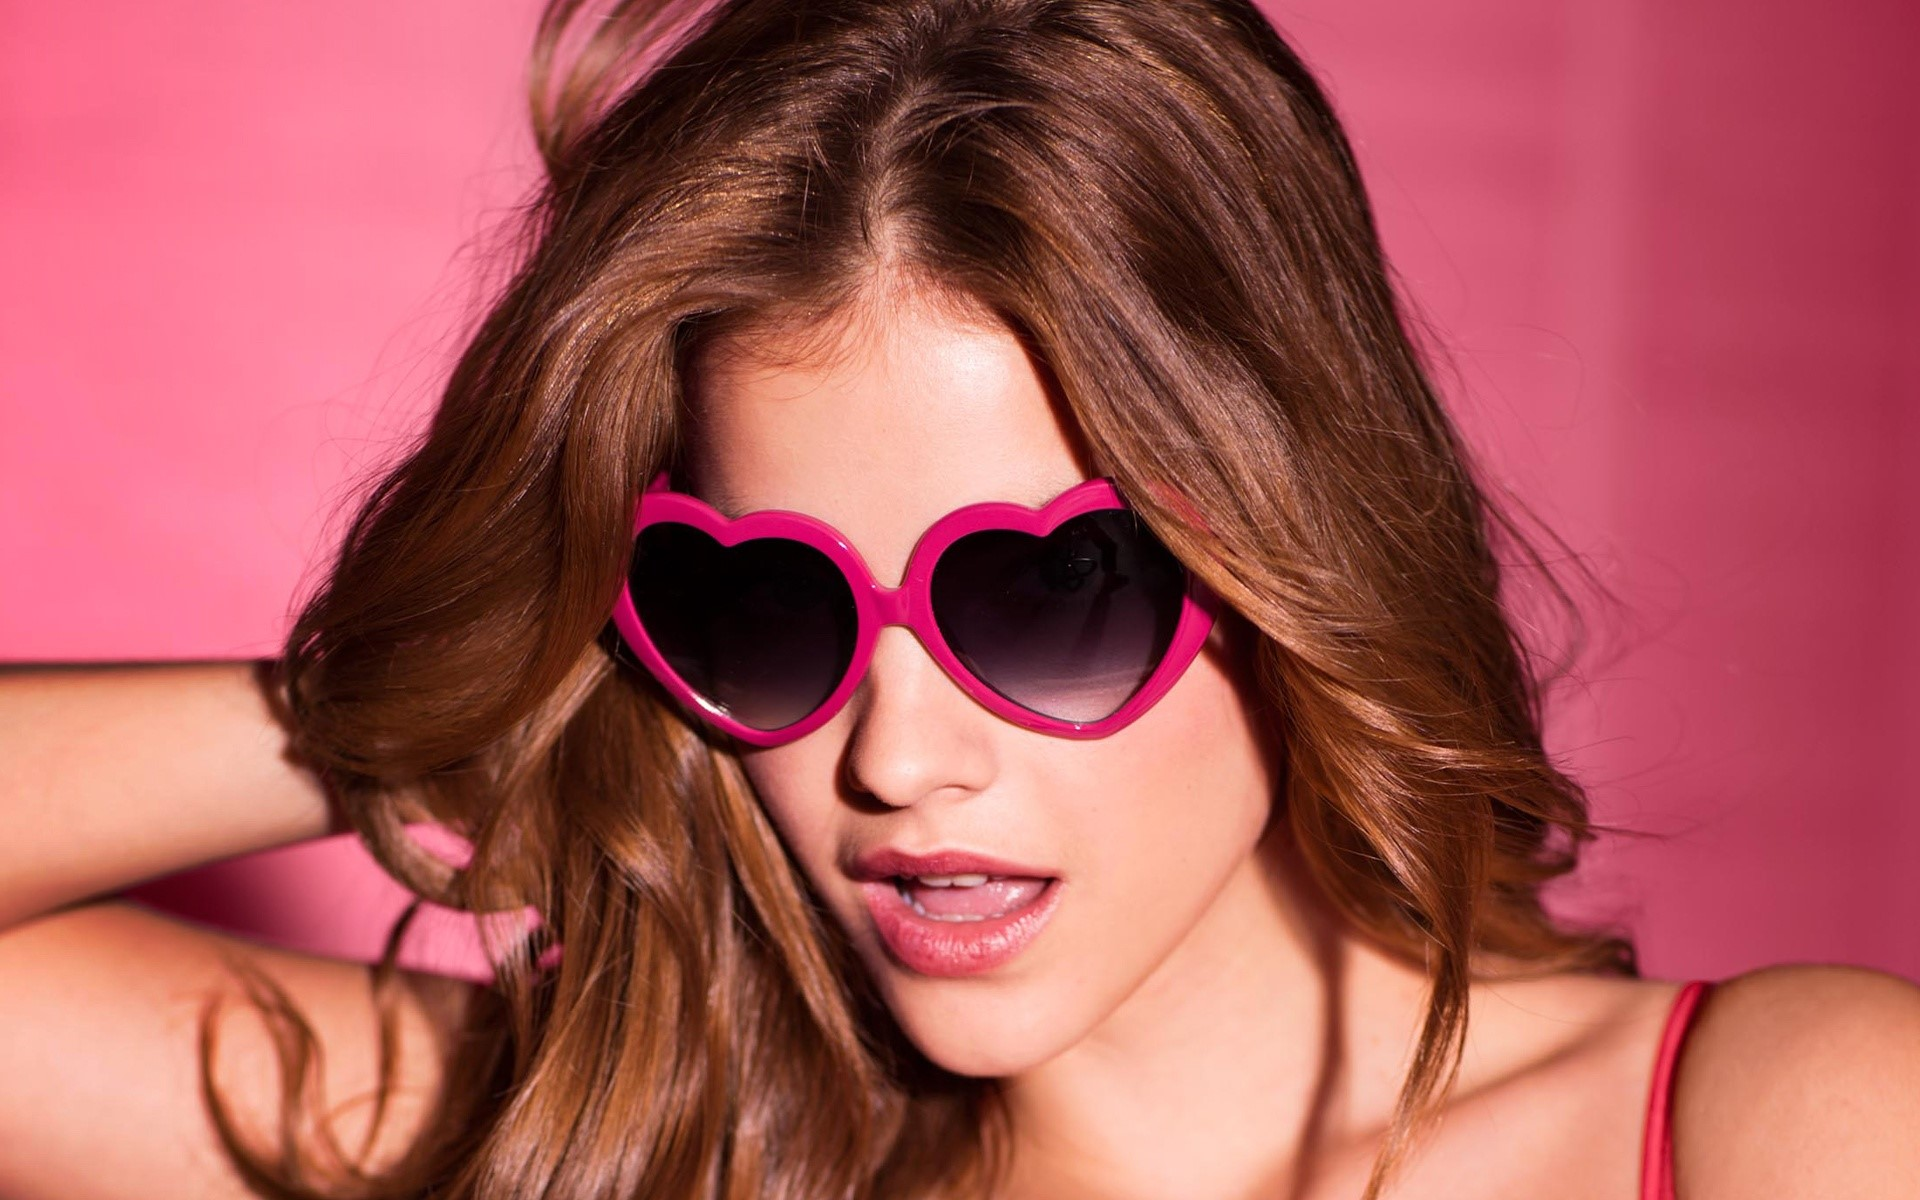 Wallpaper Barbara Palvin with sunglasses